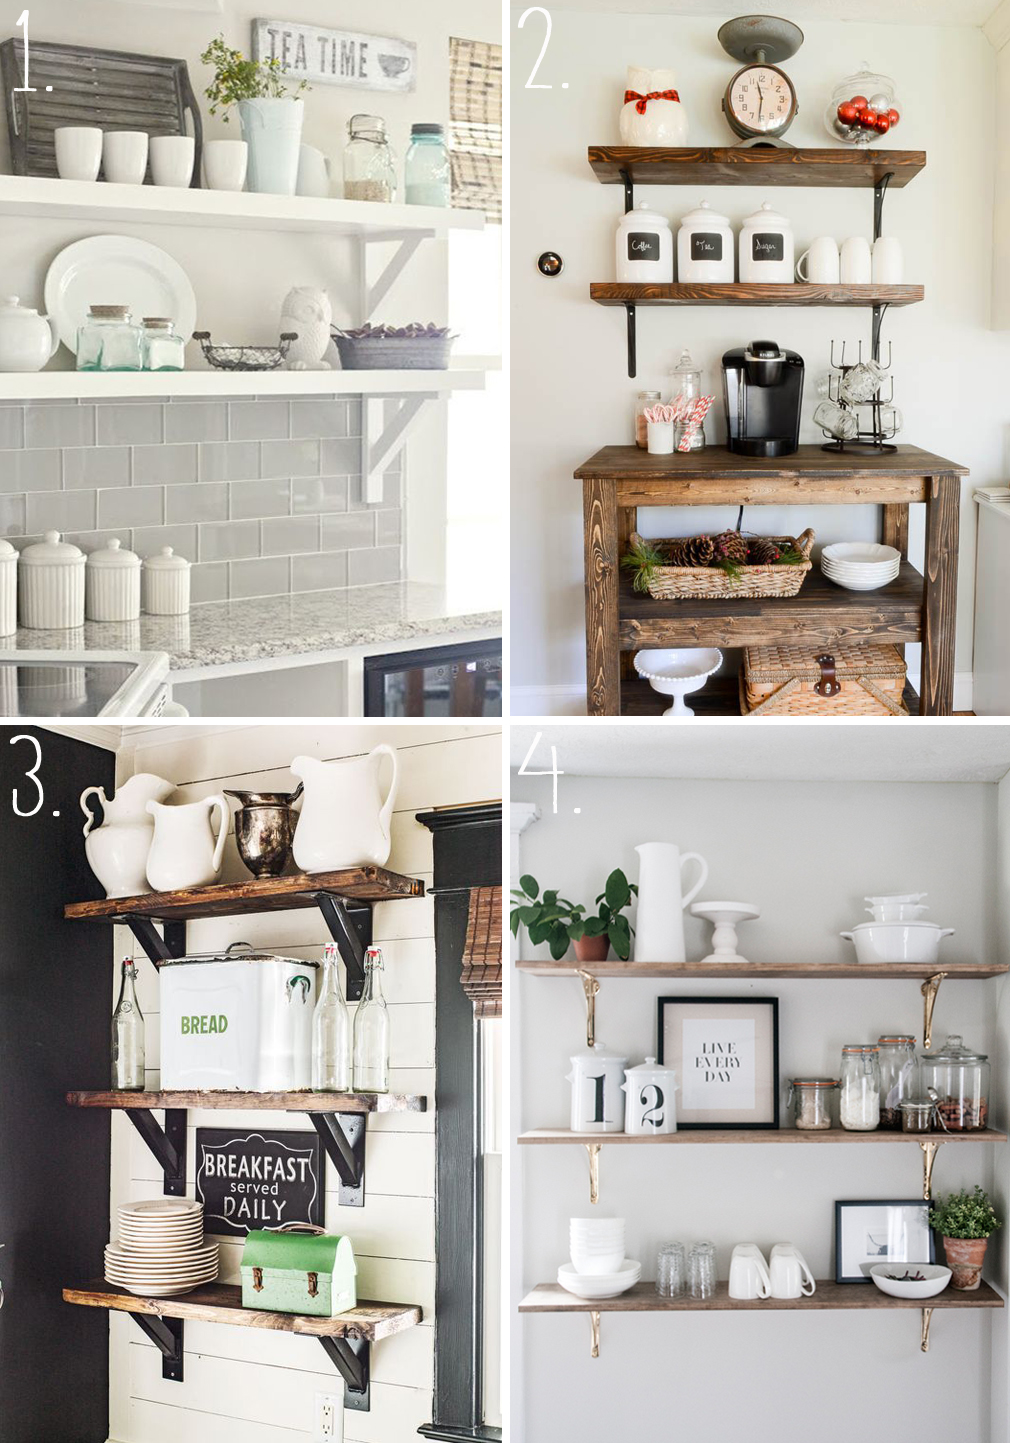 Kitchen Shelves Inspiration